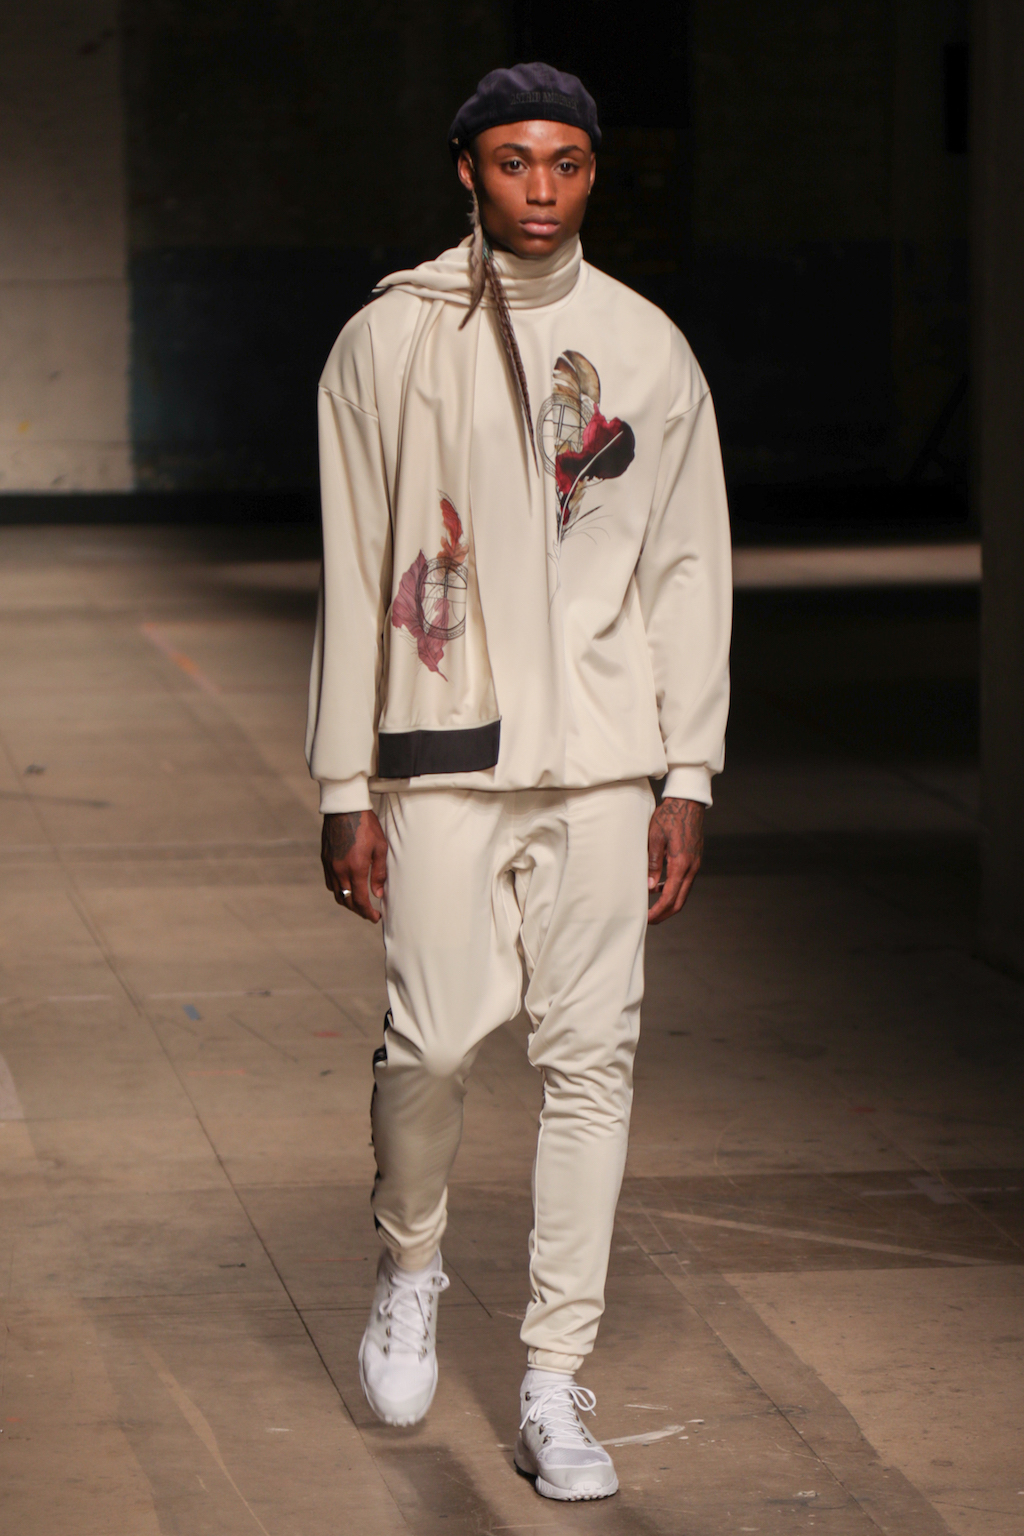 lfwm-aw17-astrid-andersen-filippo-lastorina-the-upcoming-8